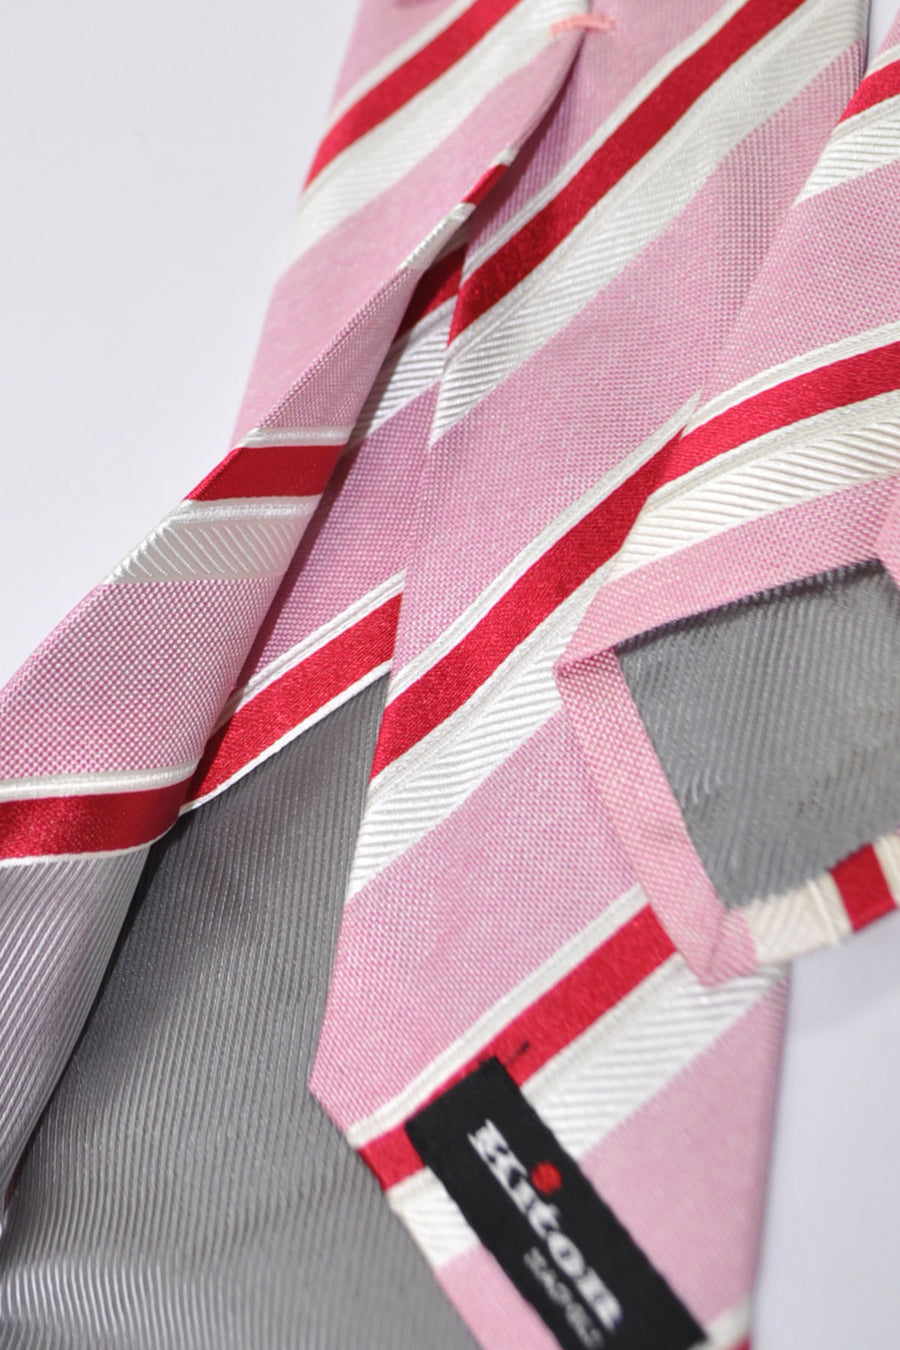 Kiton Sevenfold Tie Pink Red White Stripes